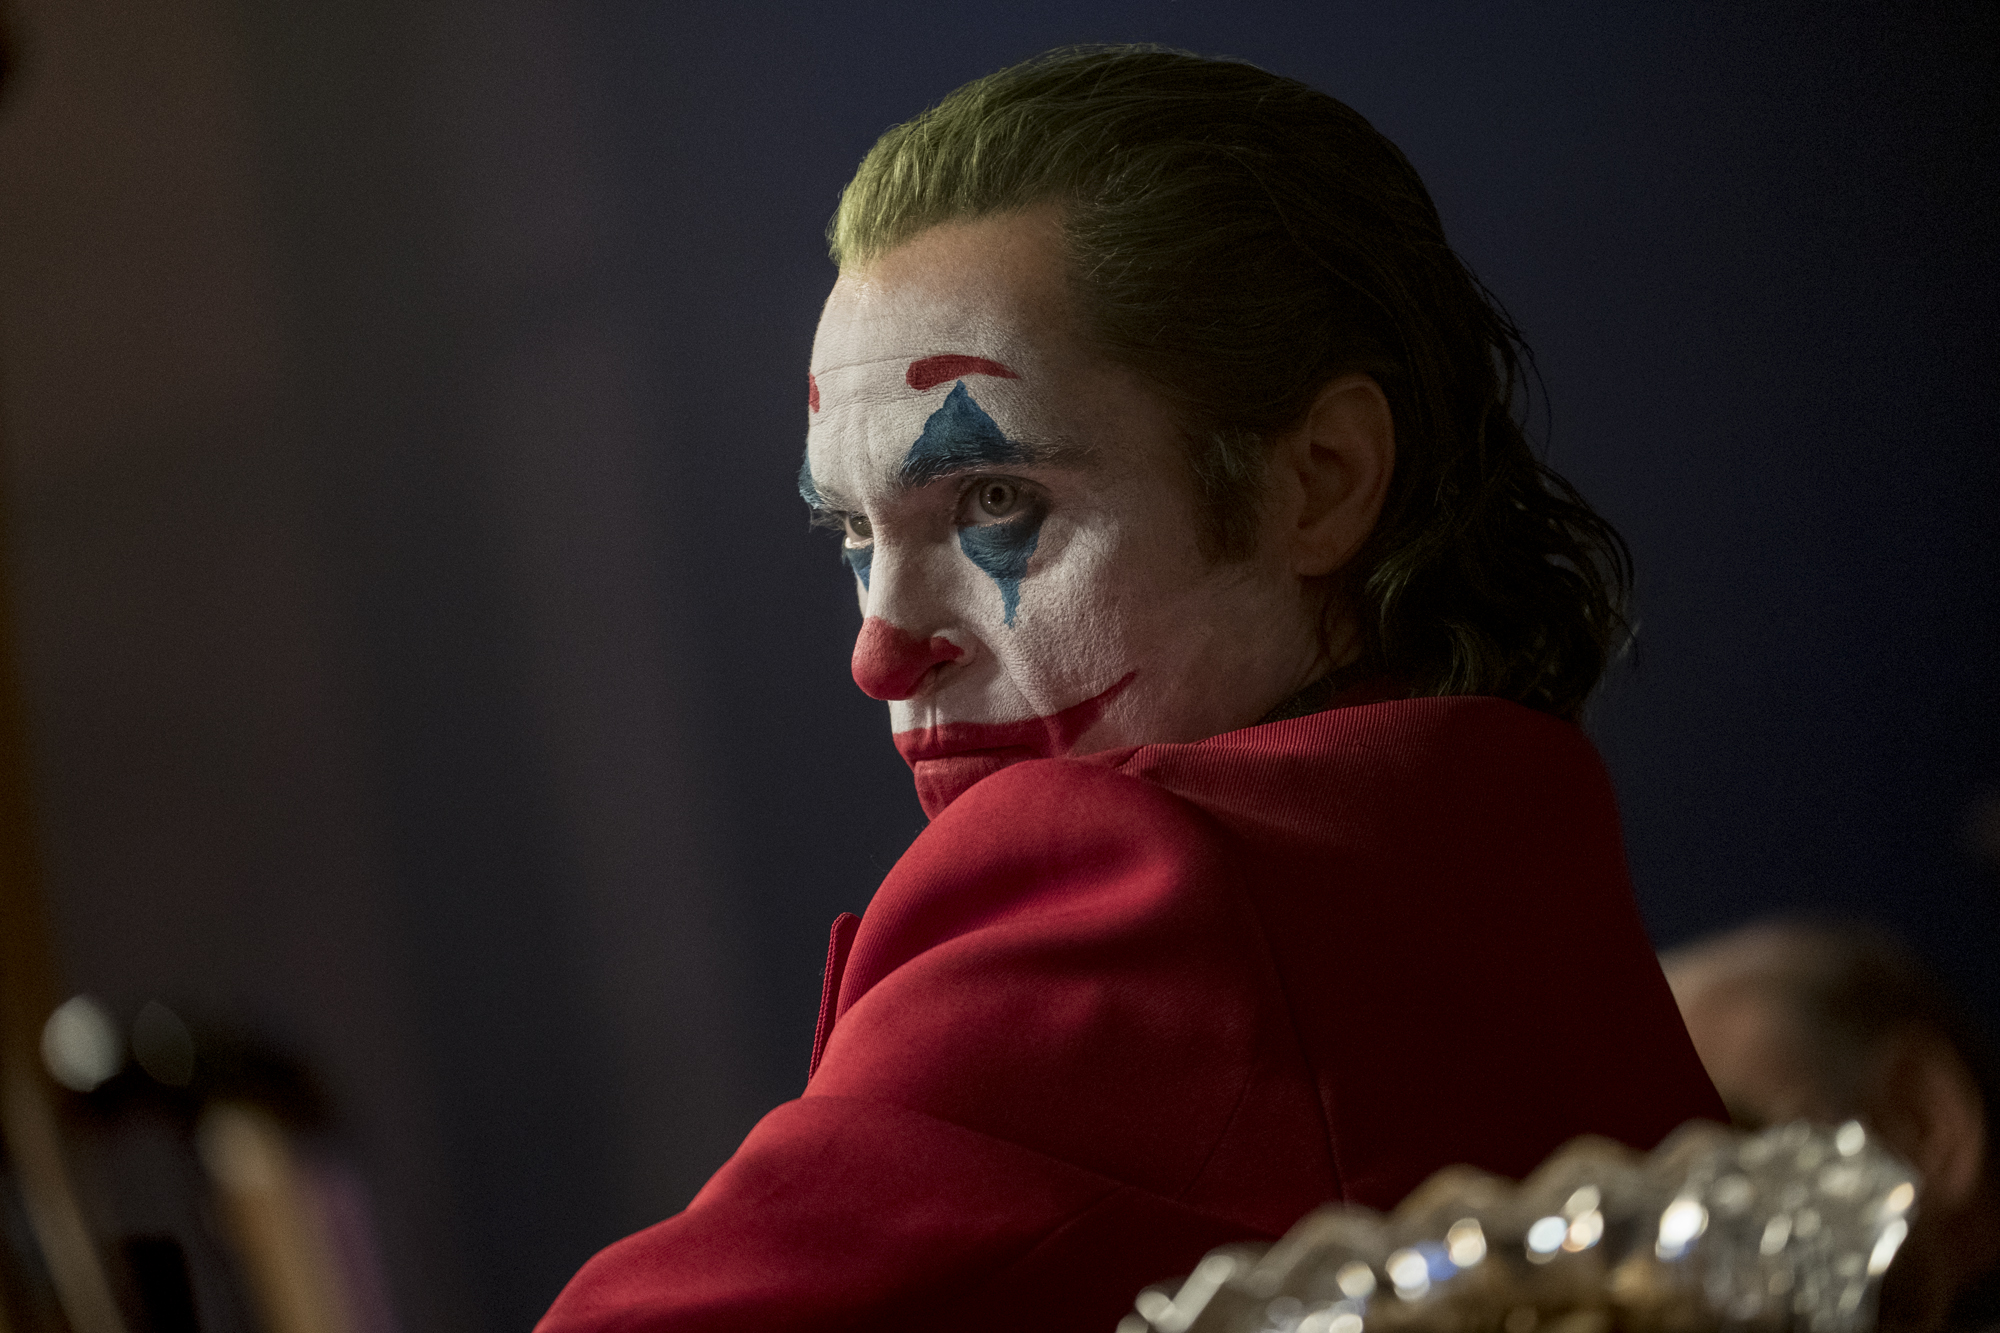 Joker arrive en ciné concert en France en avril 2021